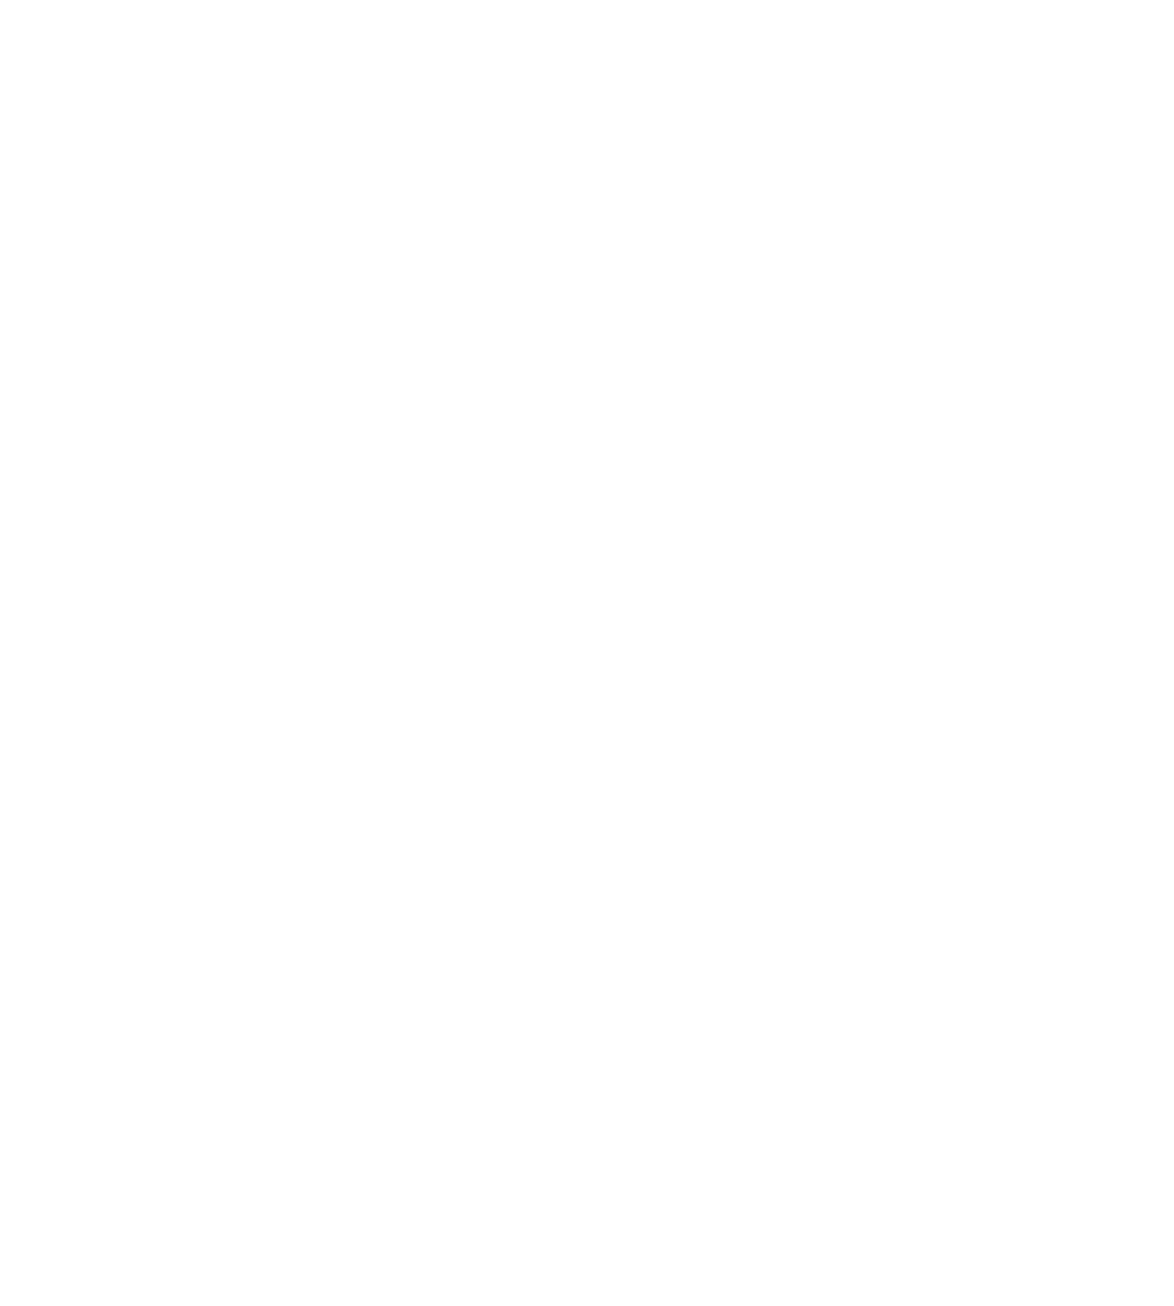 Brickhouse Media